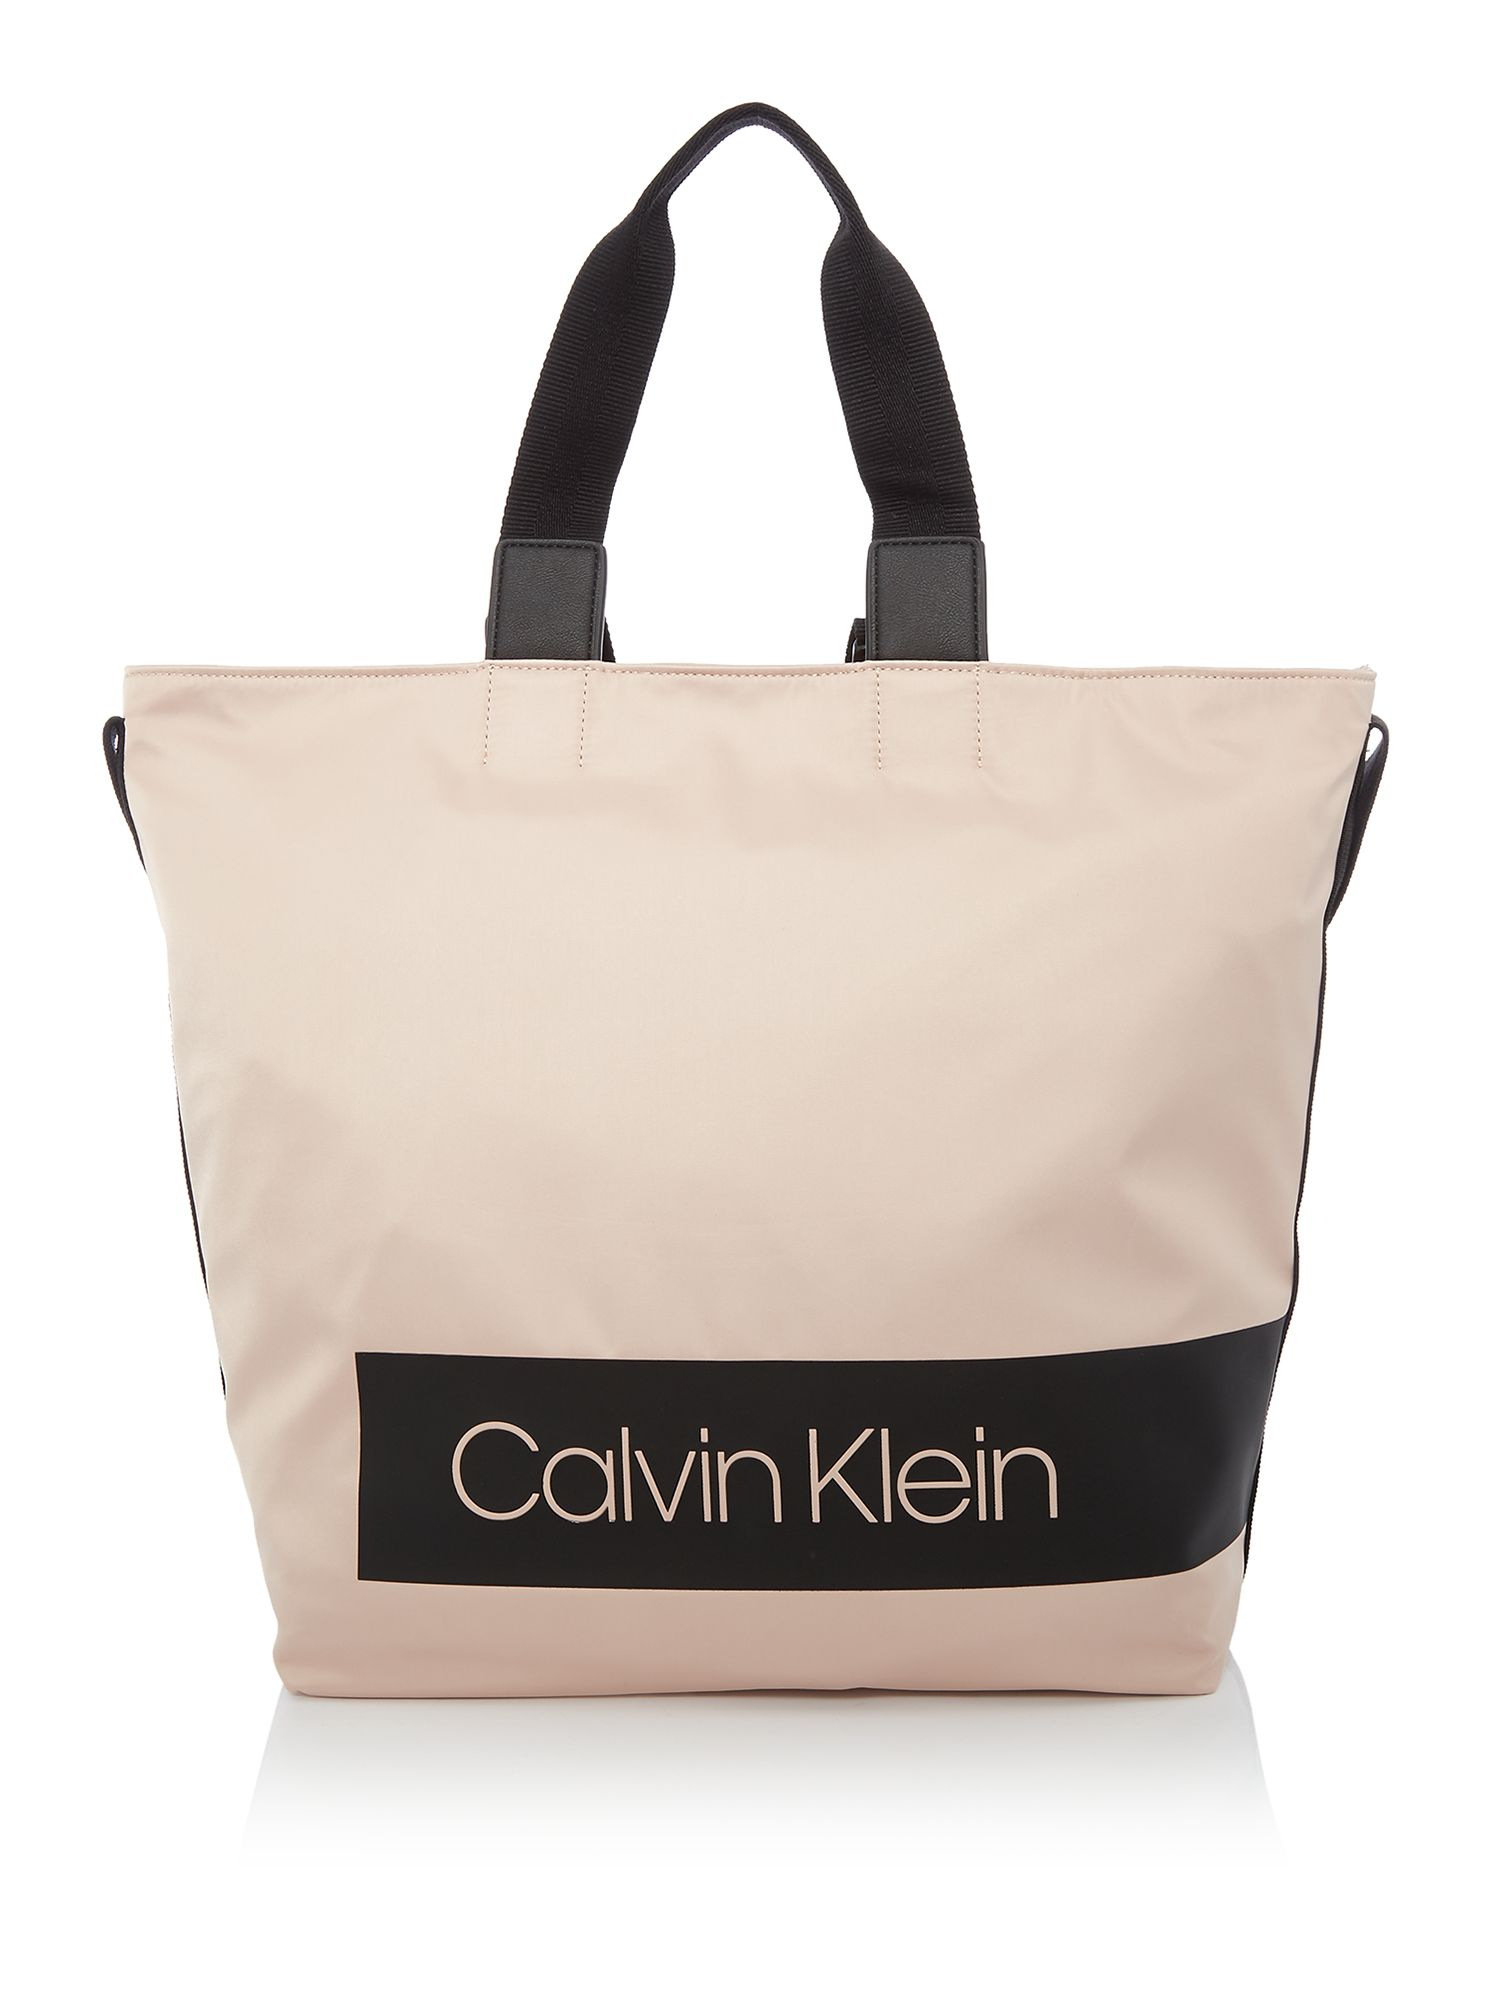 Calvin Klein Block out large shopper tote bag, Nude